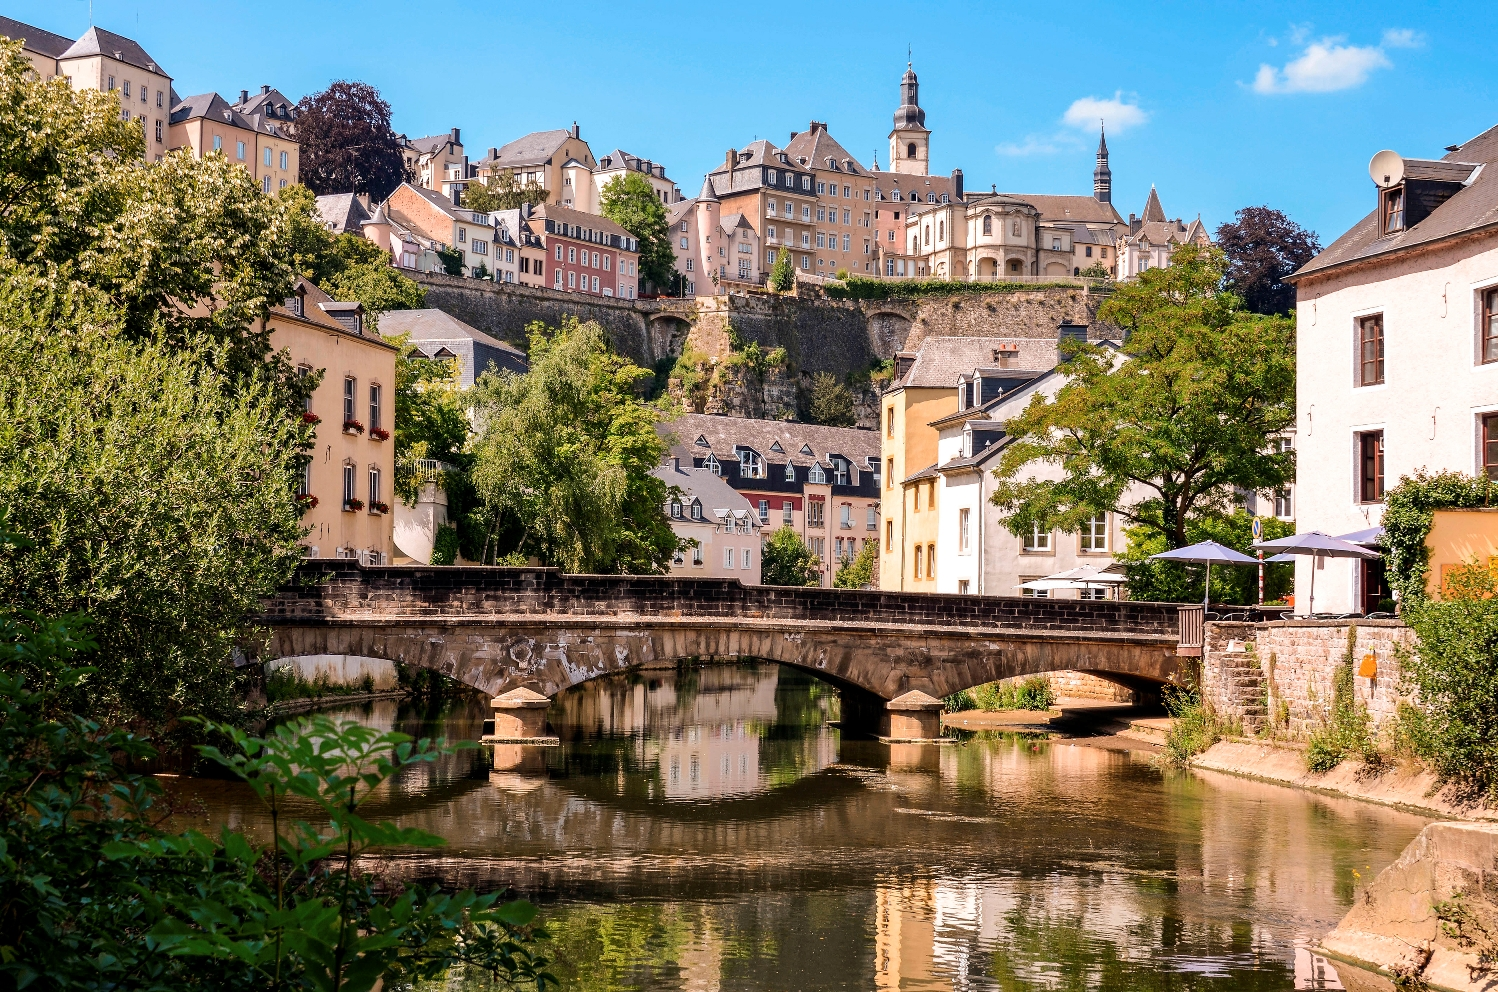 luxembourg_grund_bridge_over_alzette_river_istock_000027092899large.jpg